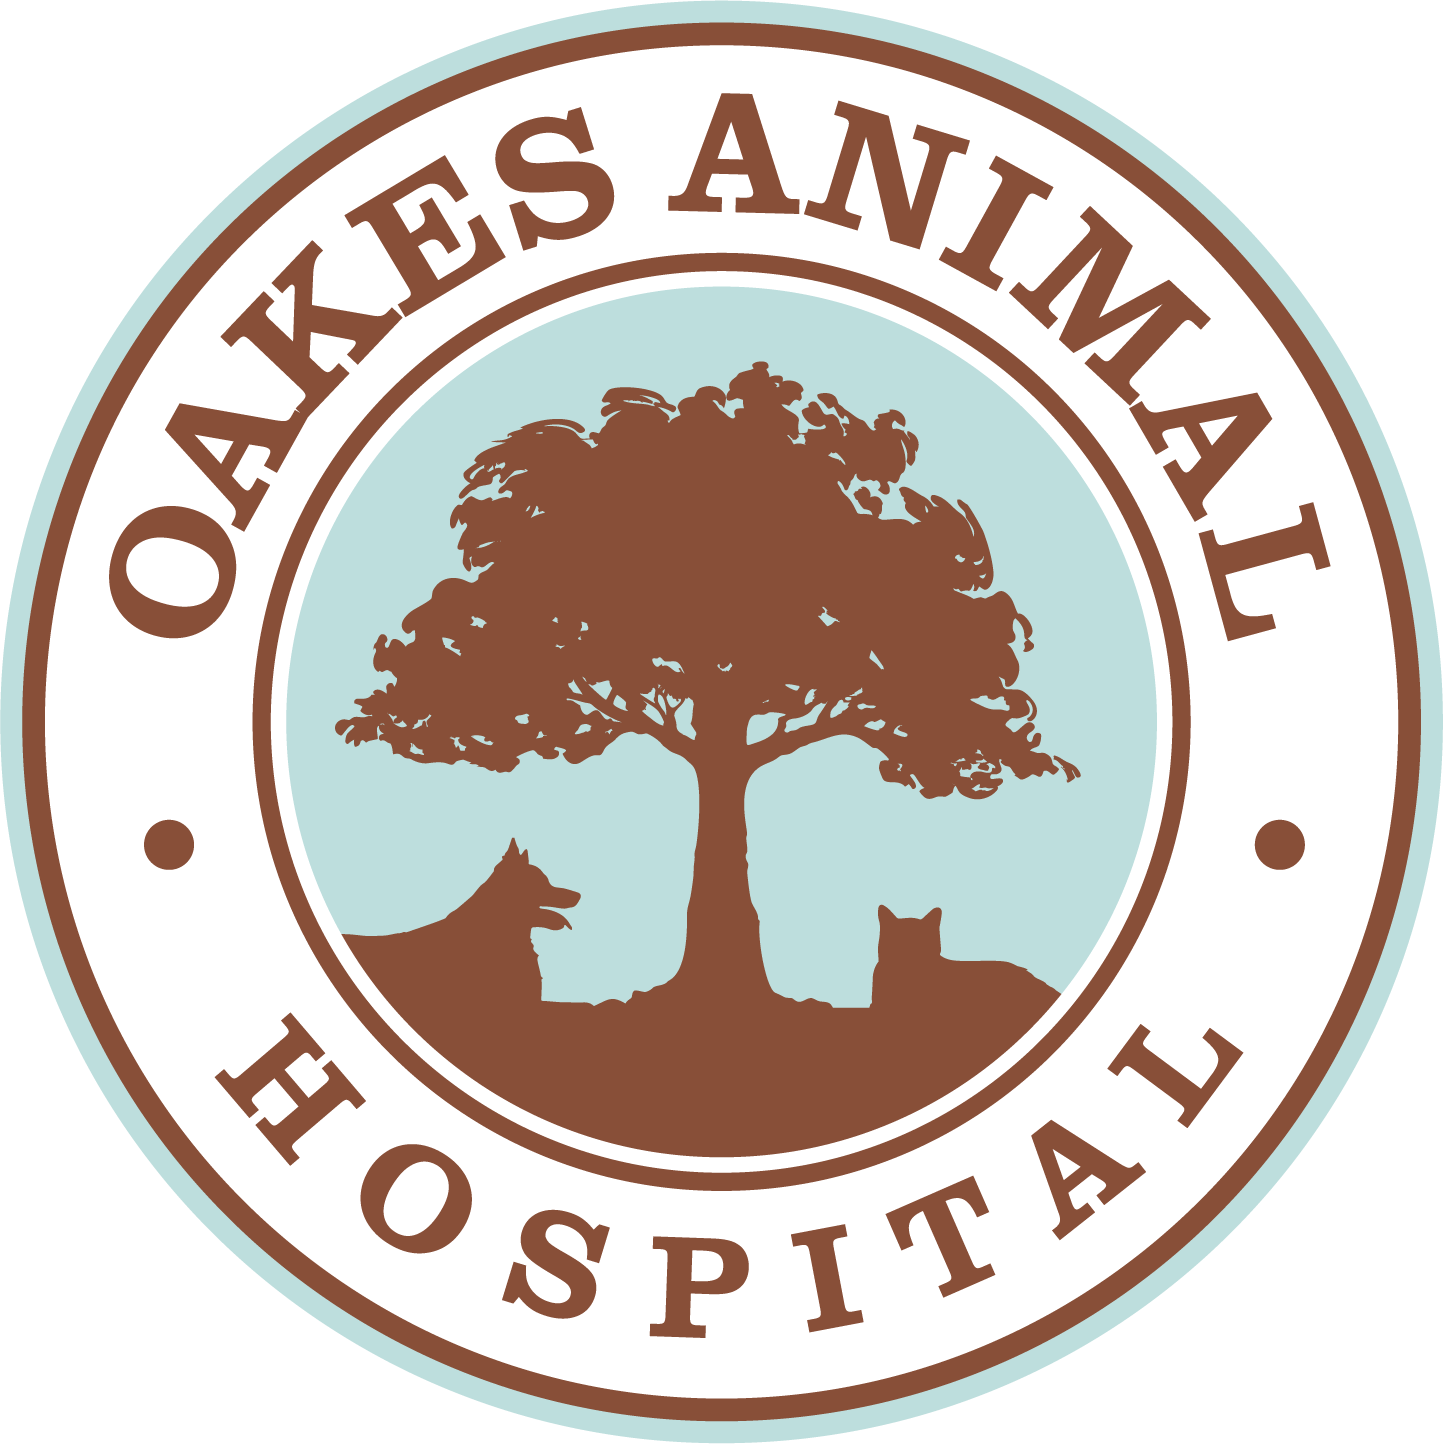 Oakes Animal Hospital logo